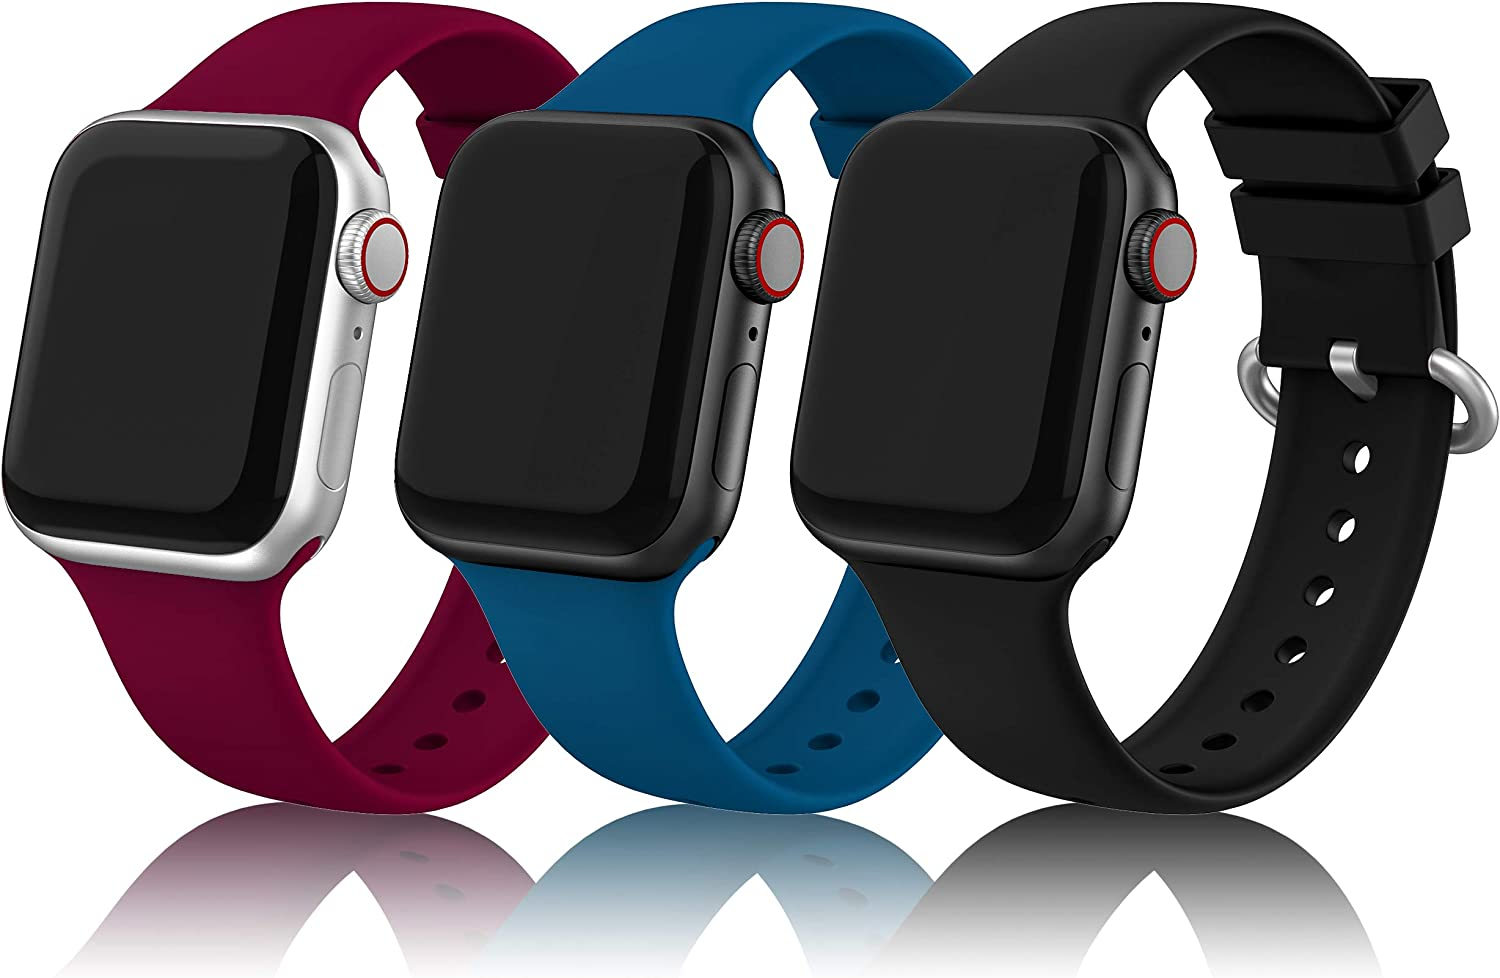 EDIMENS Sports Silicone Bands Compatible with Apple Watch 38mm 40mm Women, 3 Pack Soft Bands Wristbands Compatible for Apple Watch iWatch Series 6 5 4 3 2 1 SE Sport Edition Women Men